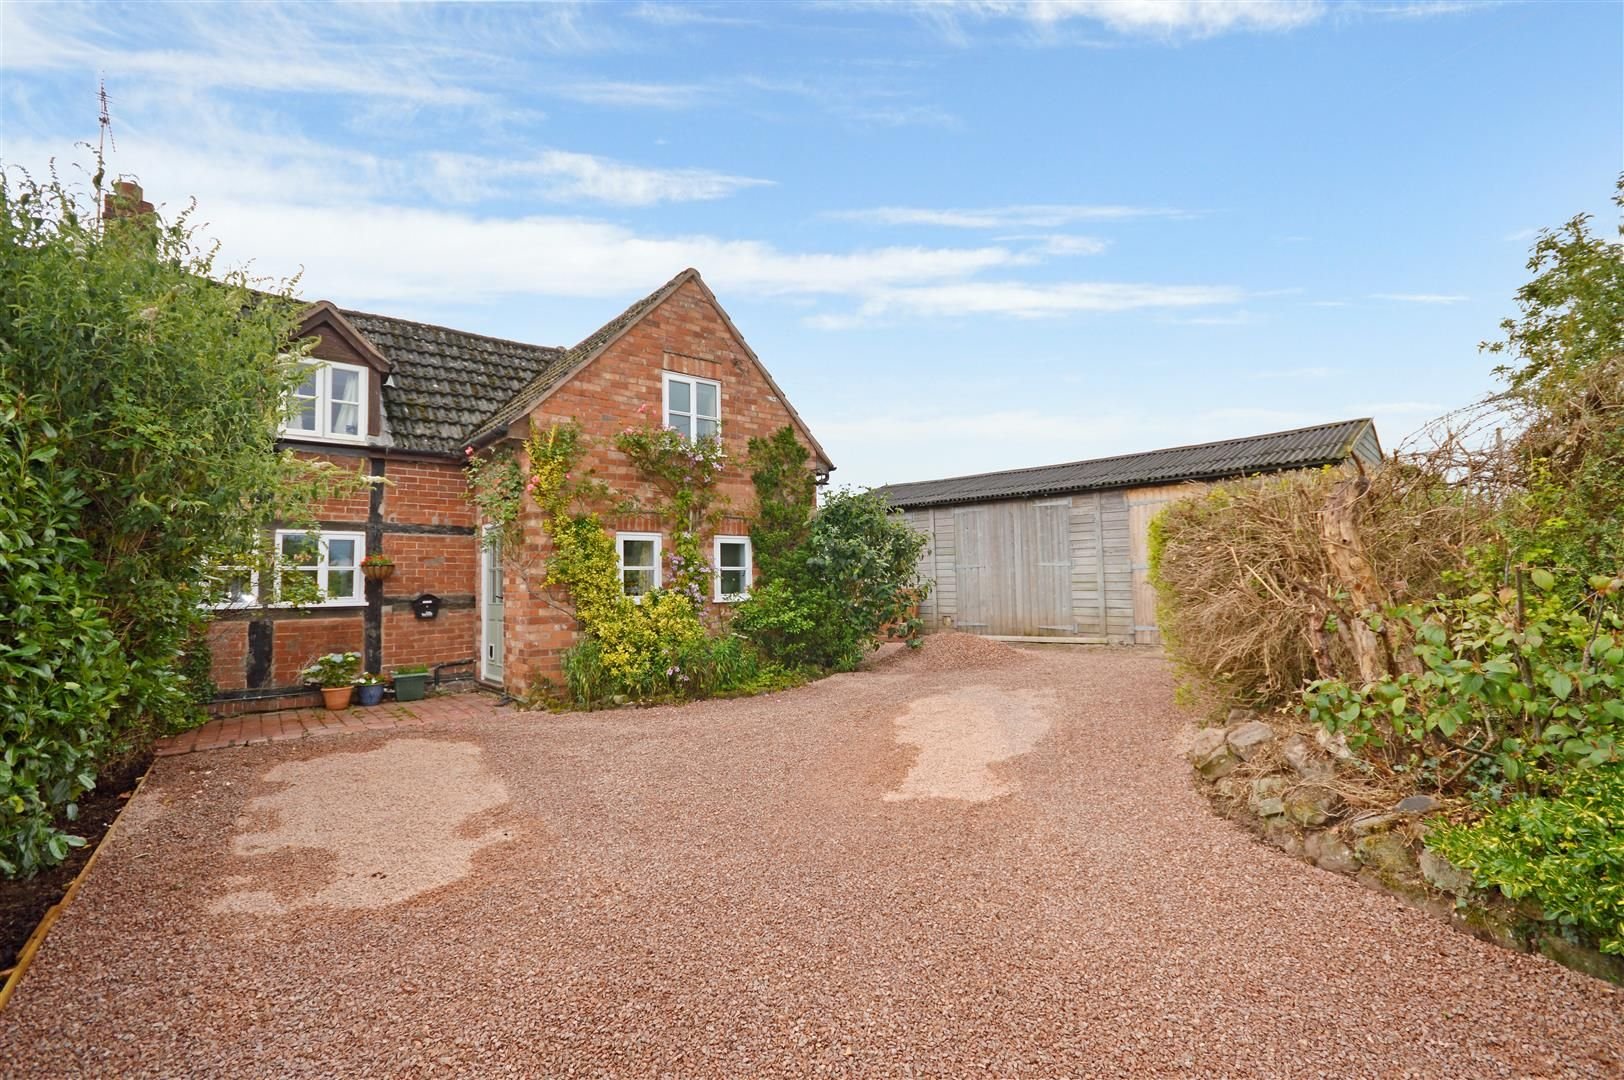 3 bed semi-detached for sale in Burley Gate, HR1